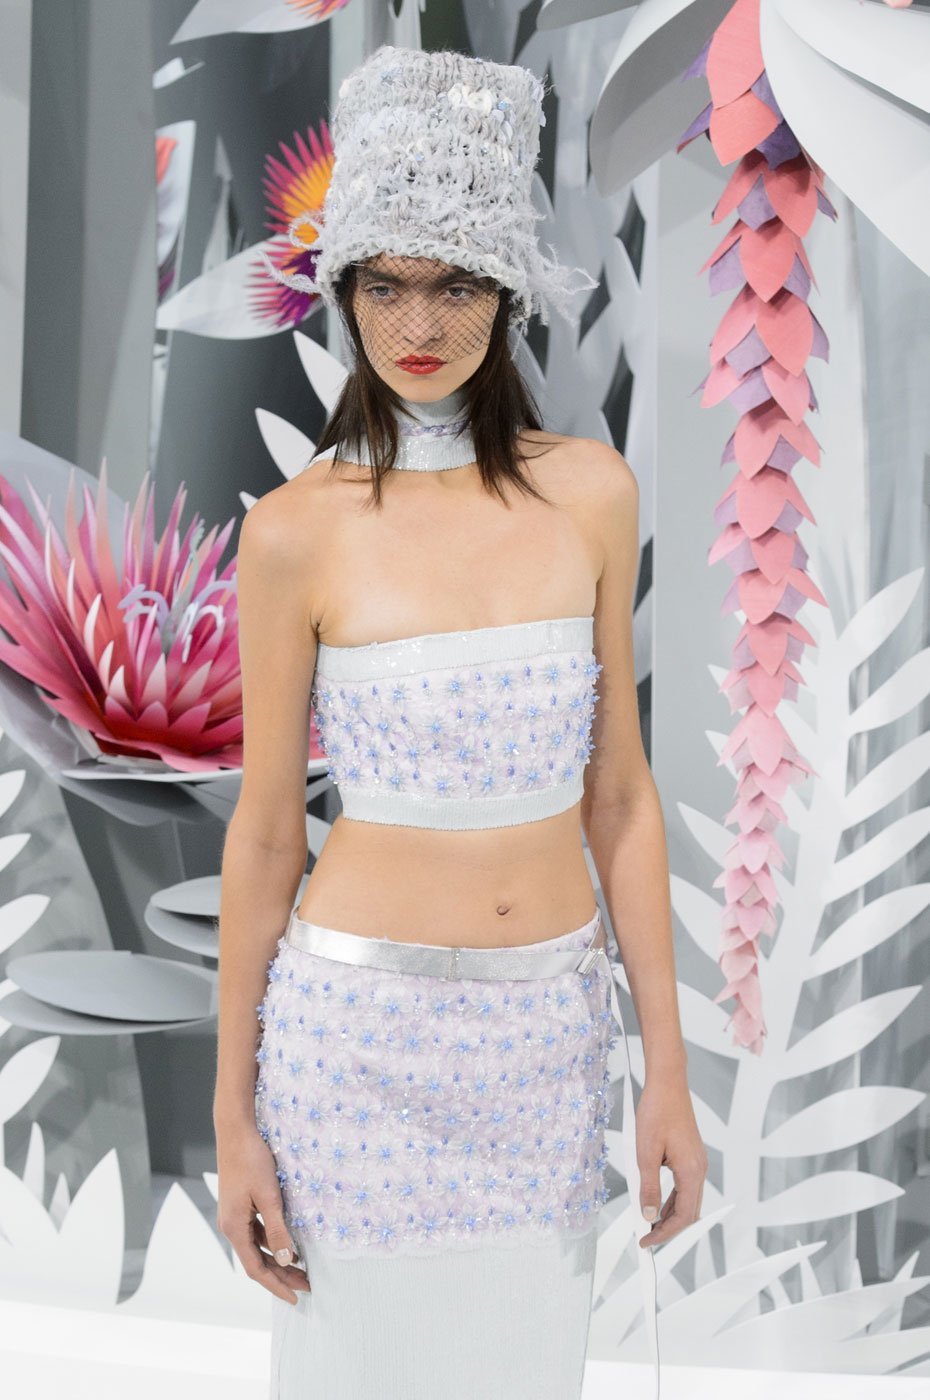 Chanel-fashion-runway-show-haute-couture-paris-spring-summer-2015-the-impression-124